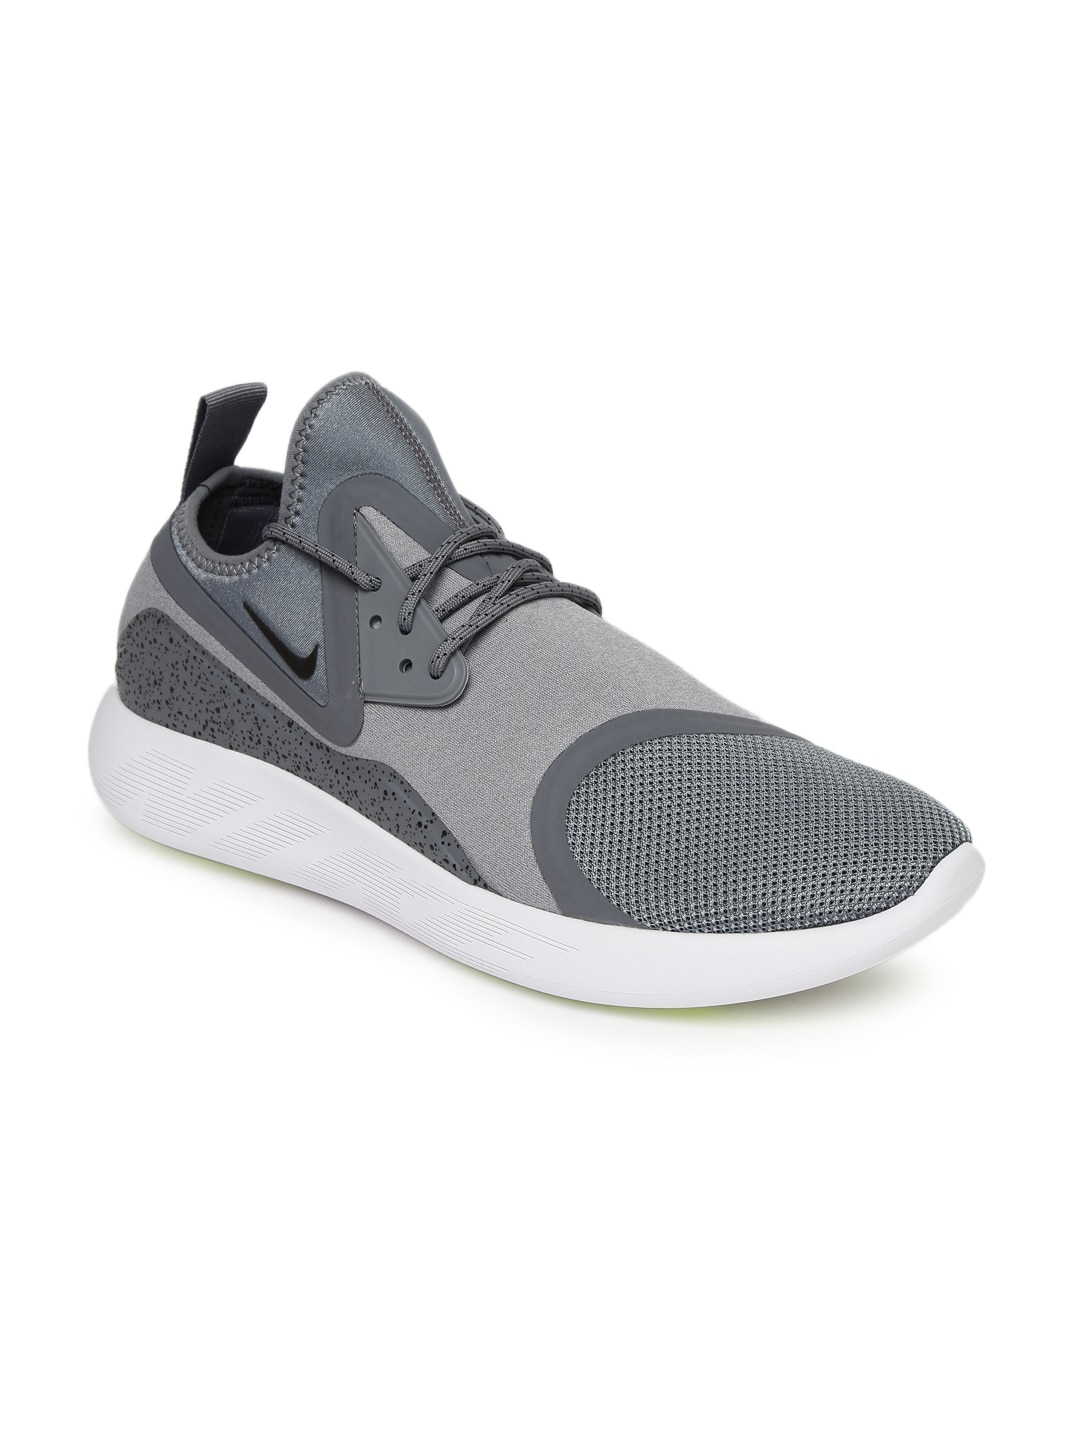 Nike Men Grey Printed LUNARCHARGE ESSENTIAL Mid-Top Sneakers image